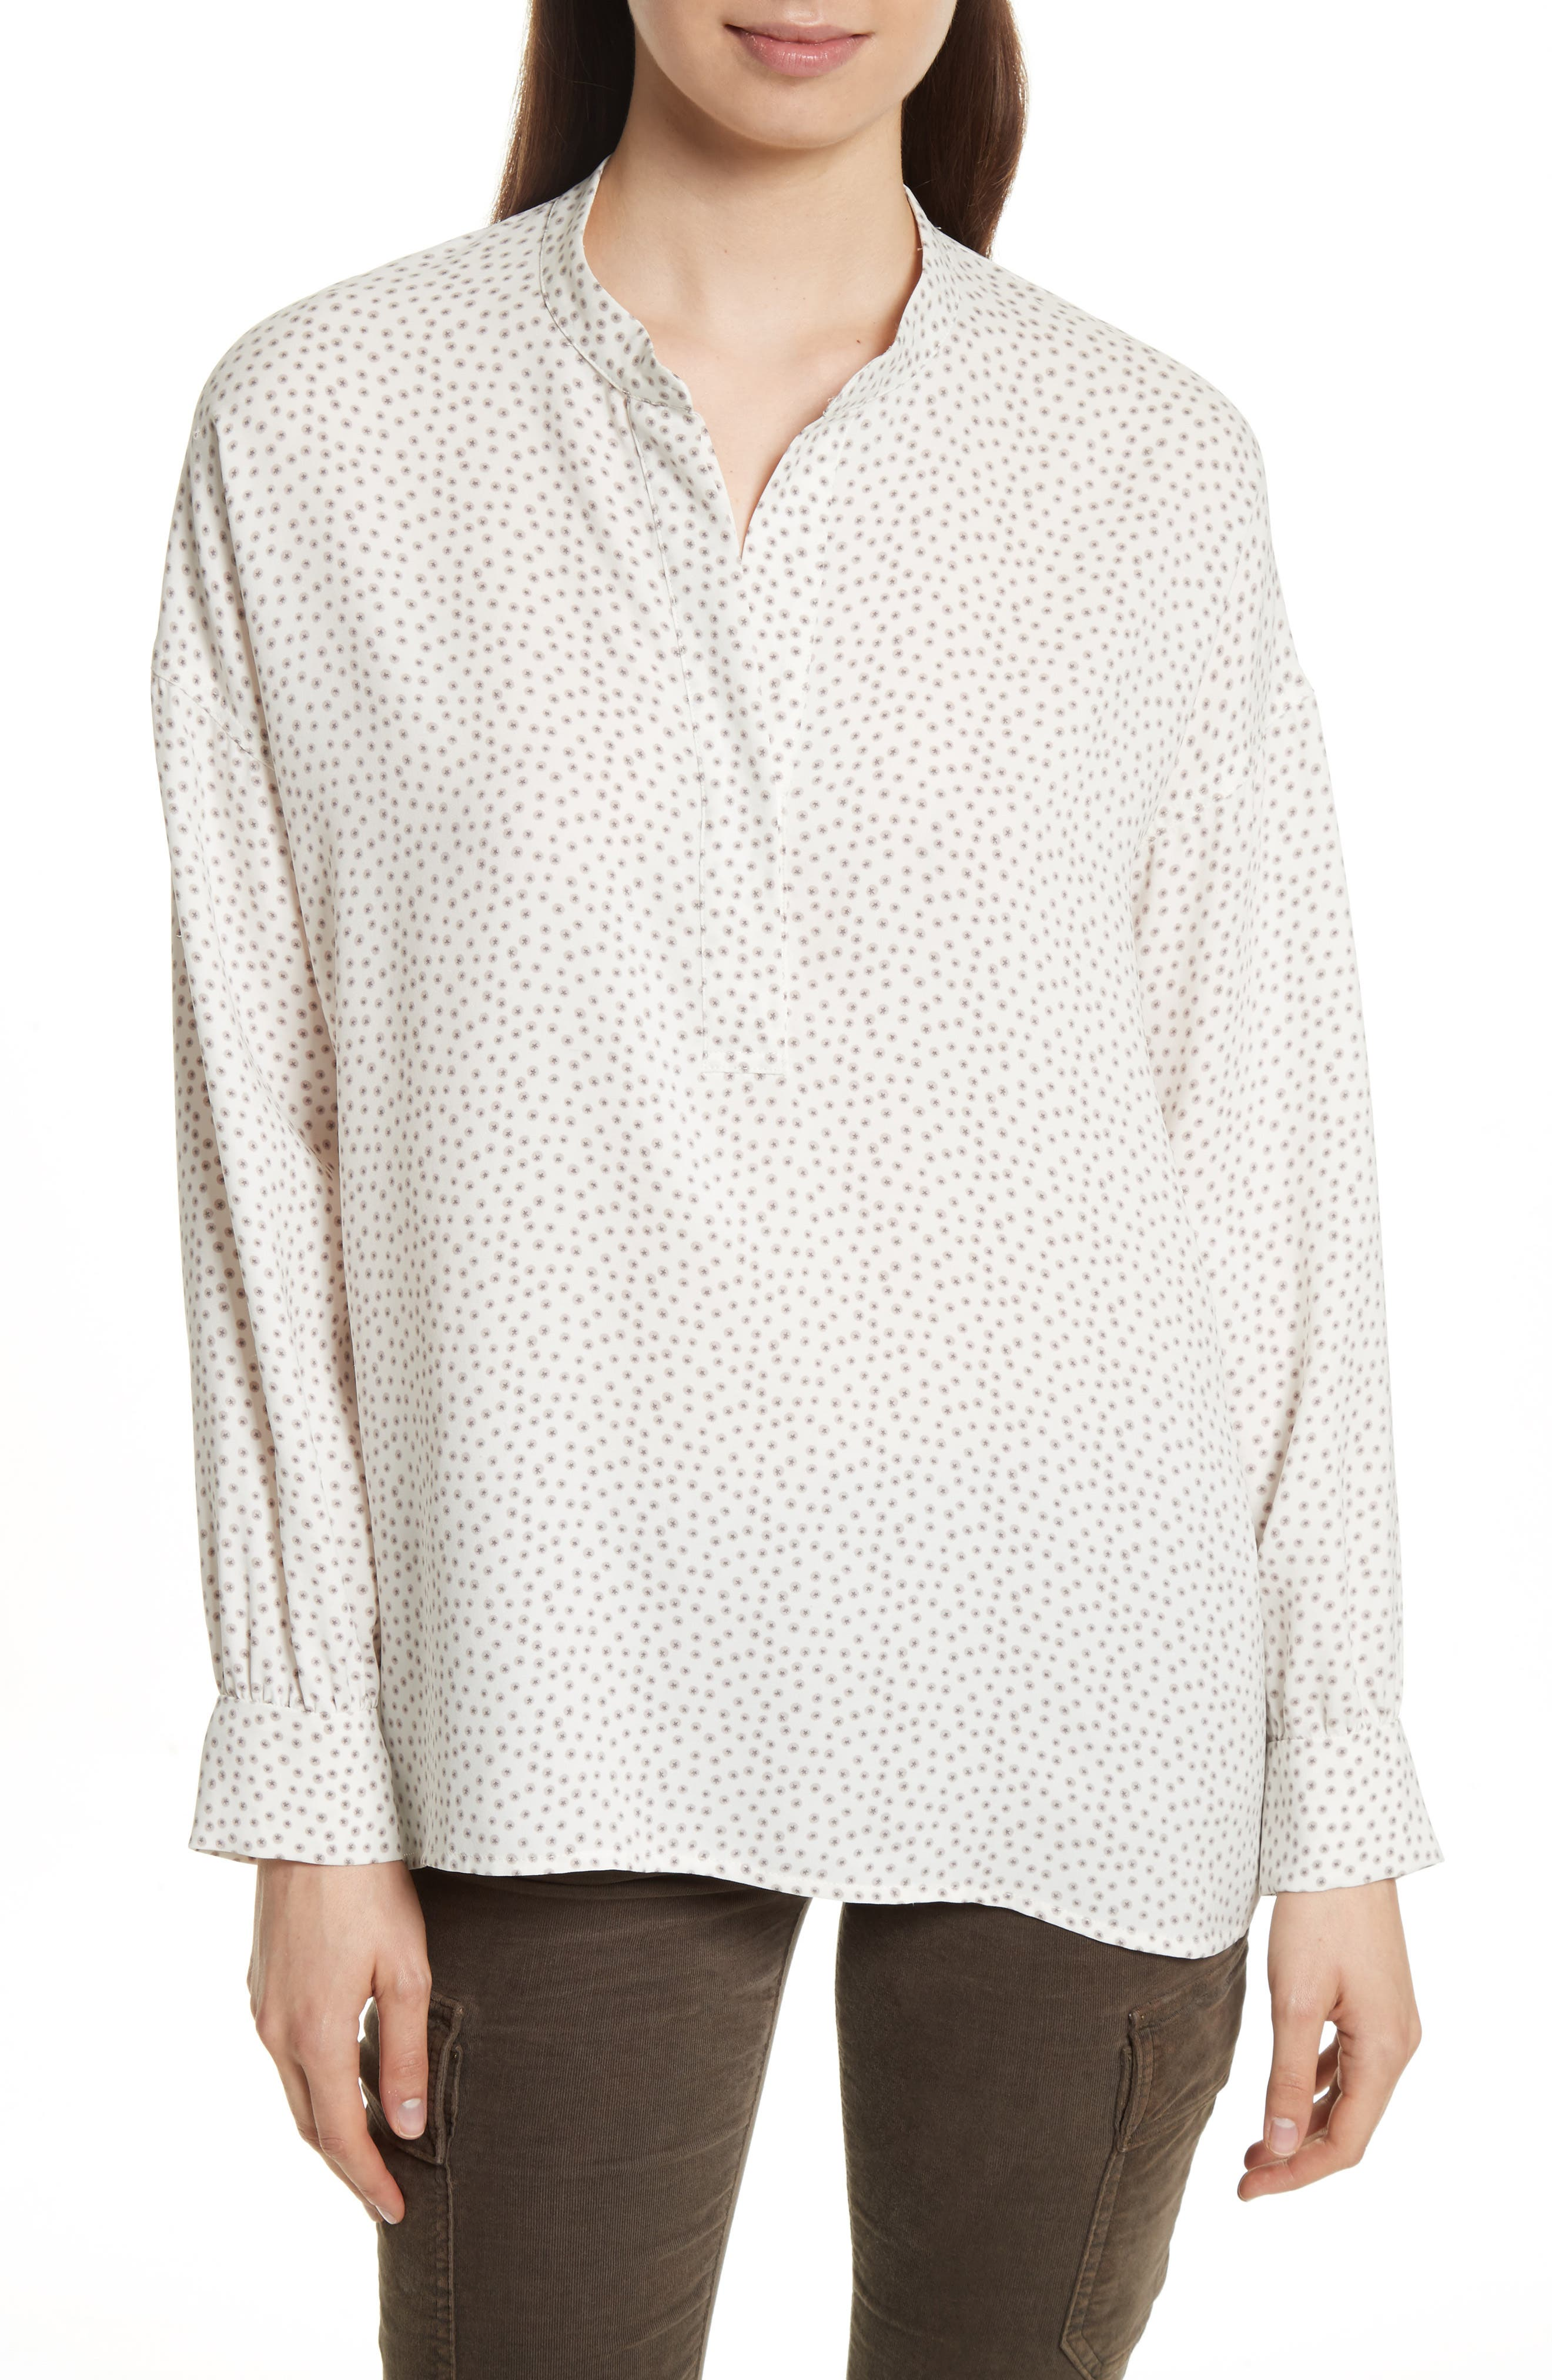 Alternate Image 1 Selected - Vince Celestial Polka Dot Stretch Silk Top